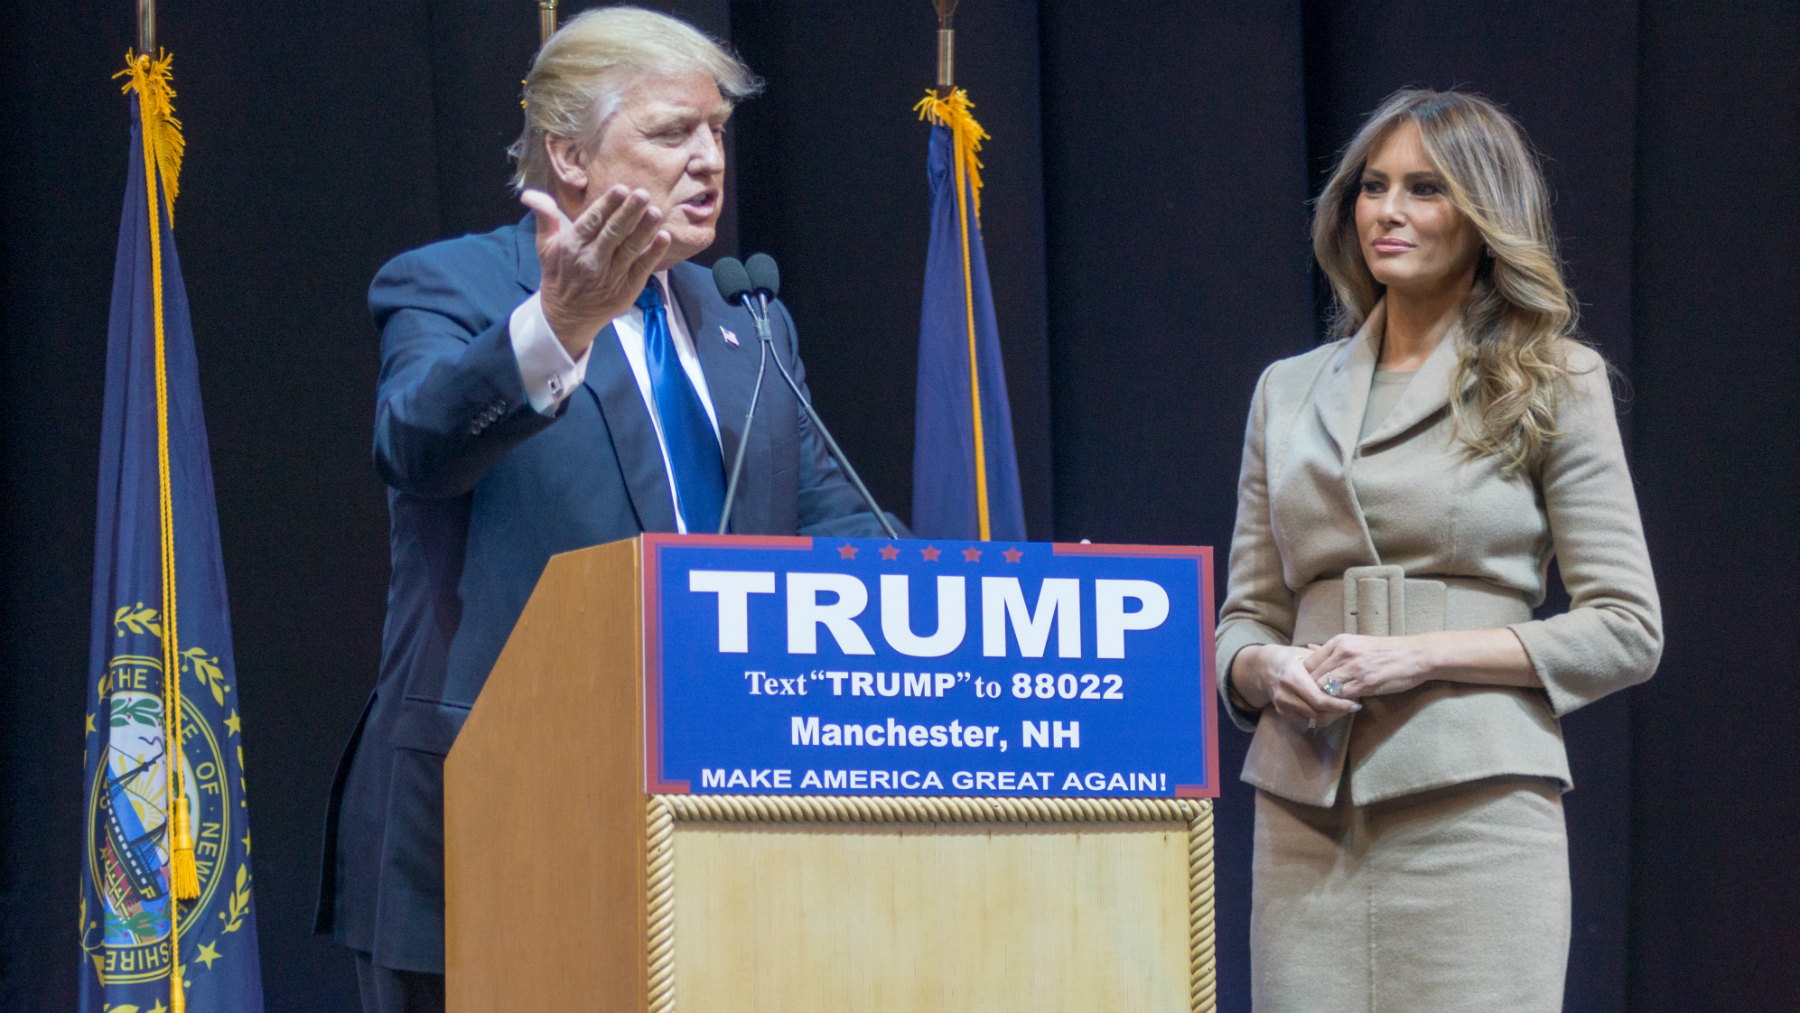 Melania, Donald Trump roasted on Twitter for ignoring their anniversary